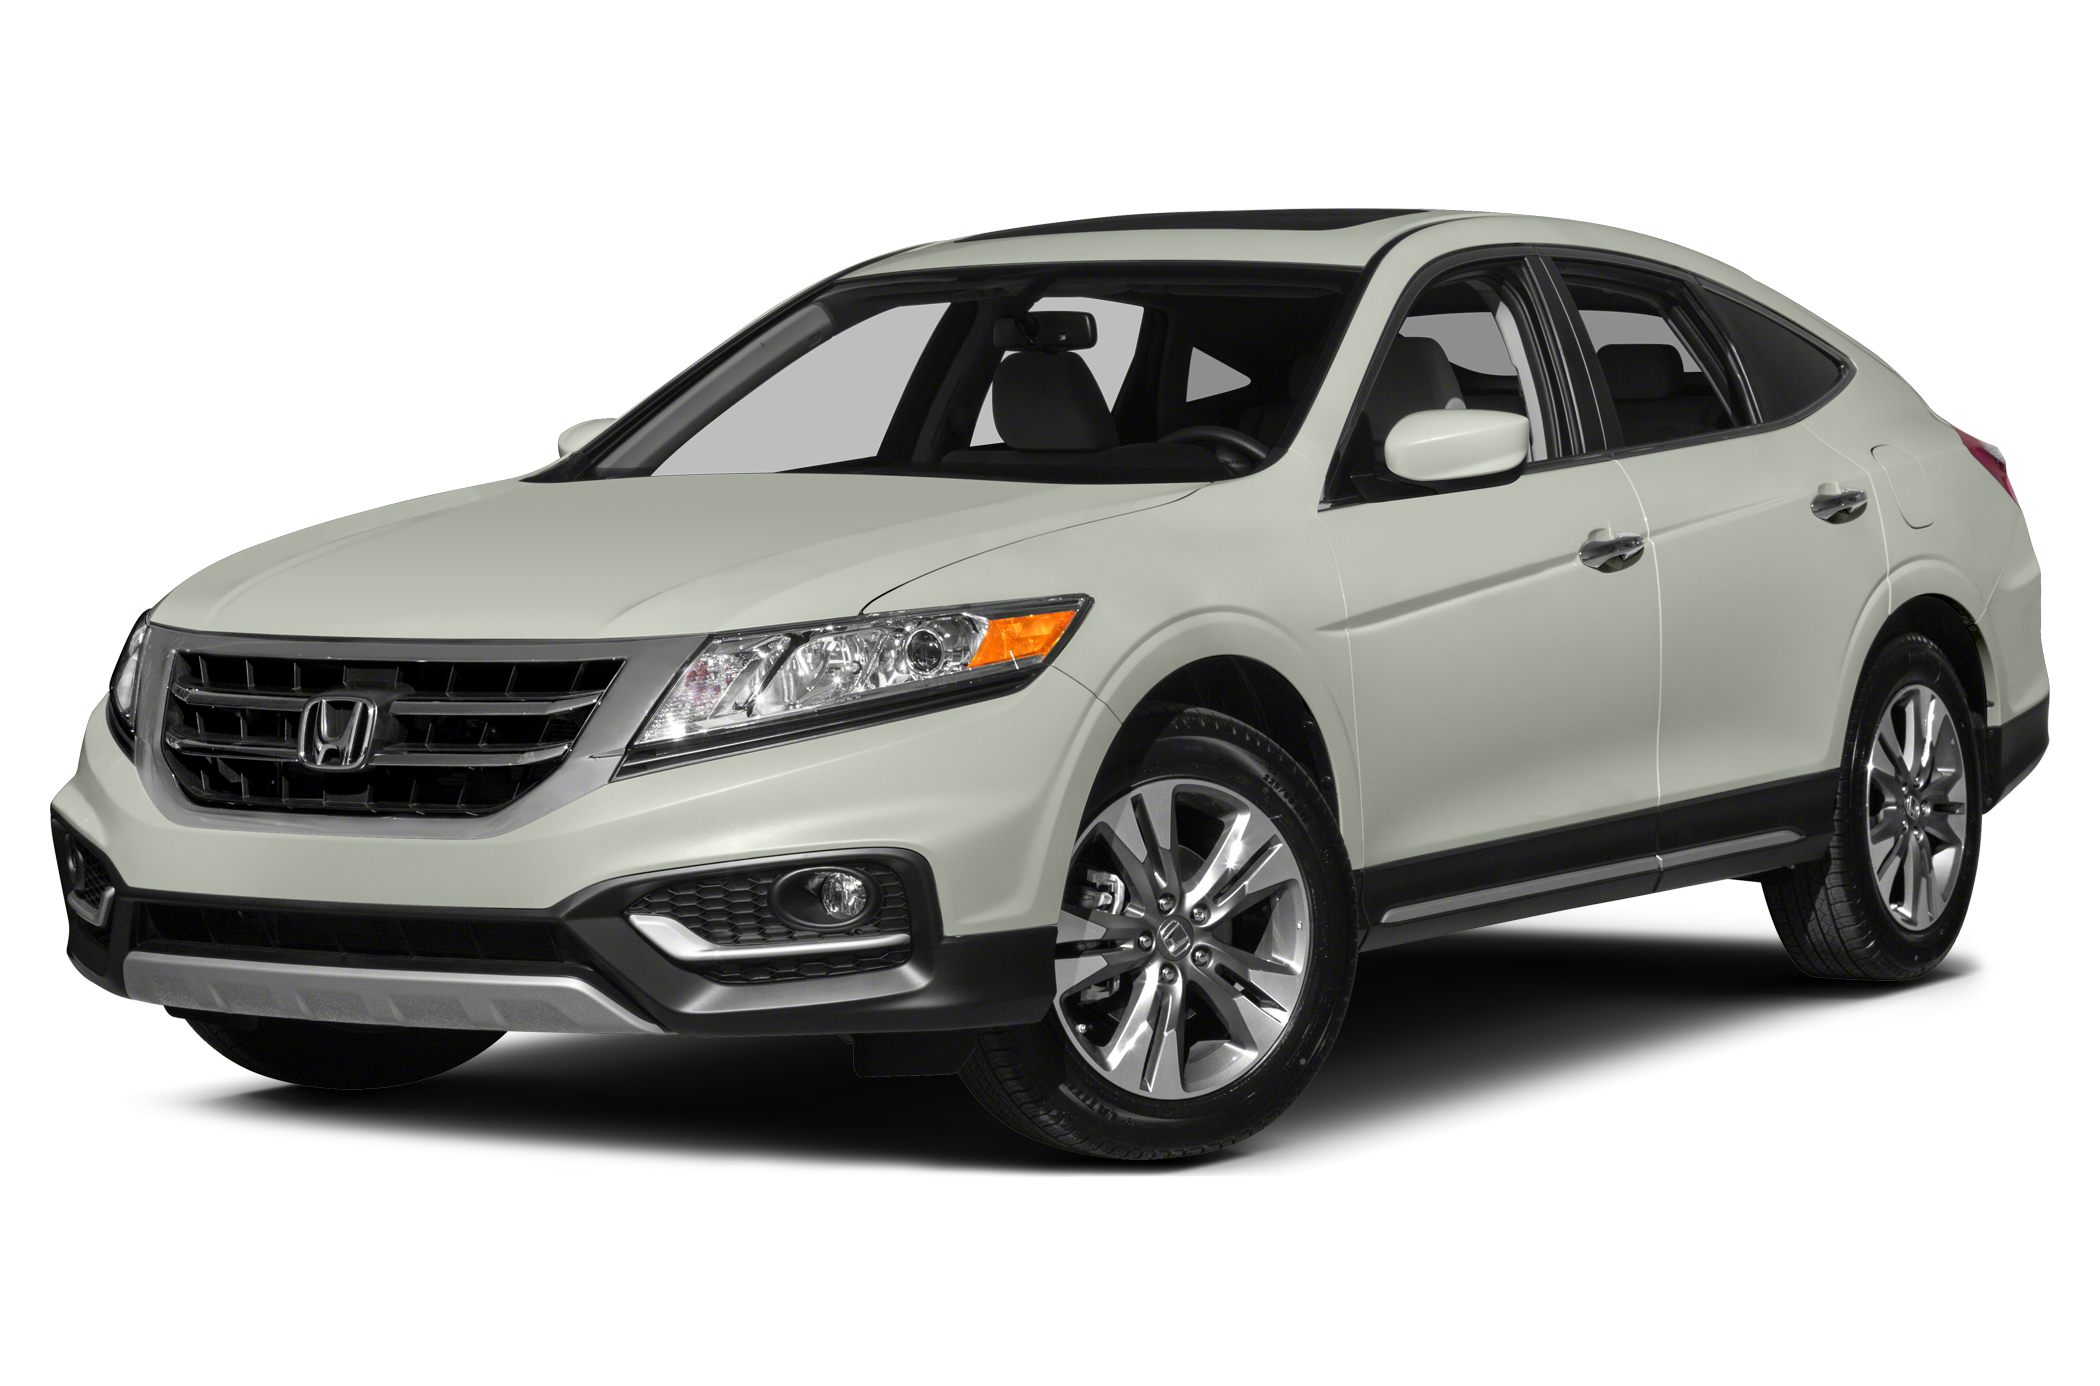 Honda Crosstour: photos, specifications, reviews of owners 85